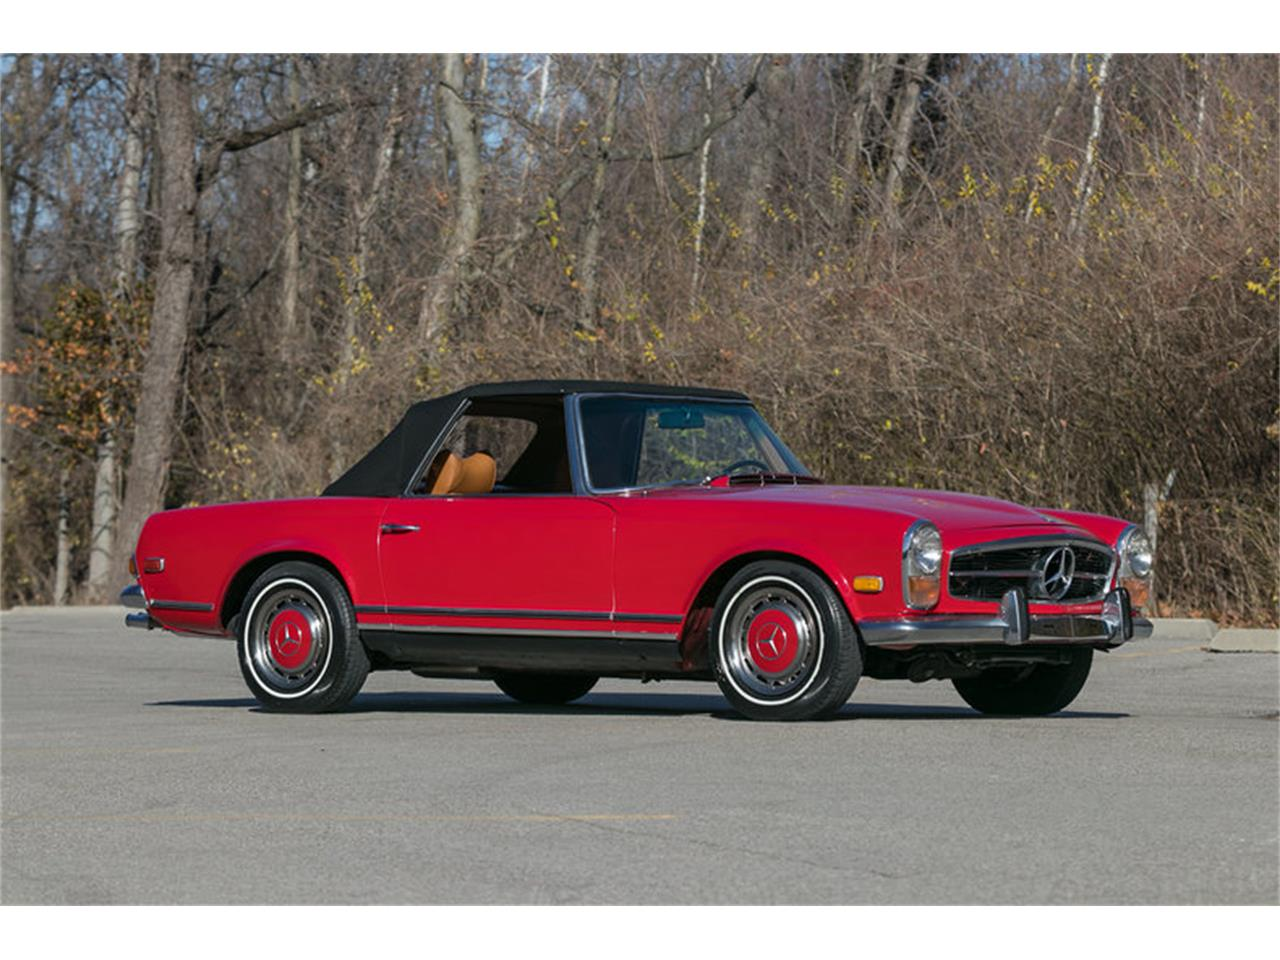 Large Picture of Classic 1971 Mercedes-Benz 280SL located in St. Charles Missouri - $69,995.00 - MFTR